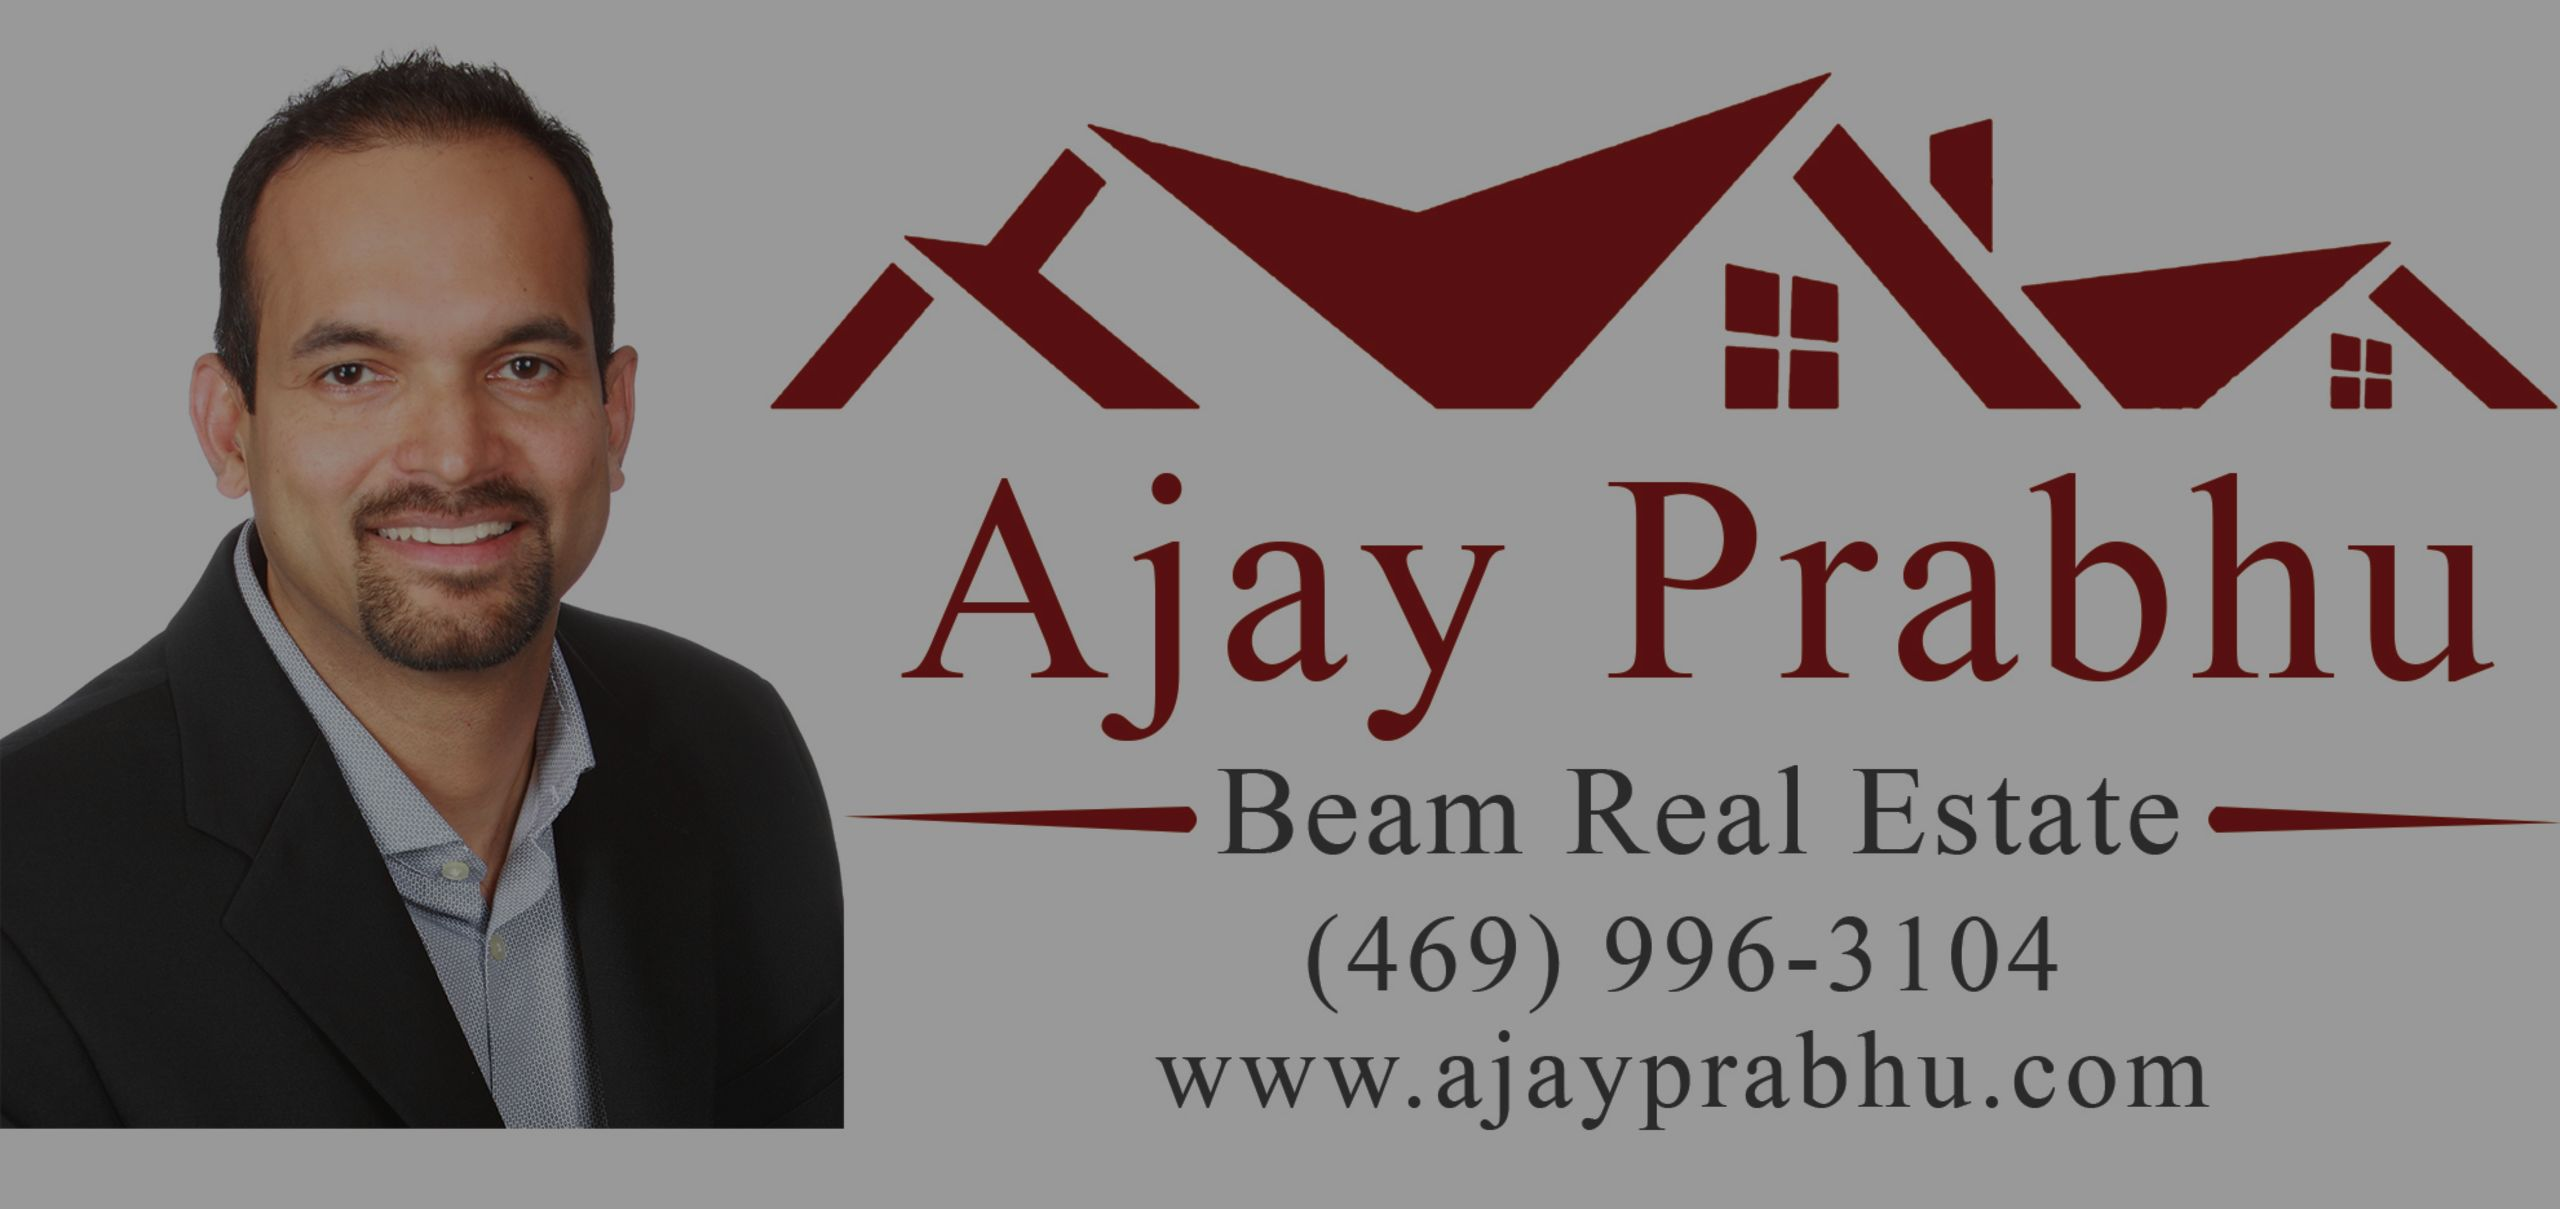 Indian Desi Realtor Dallas